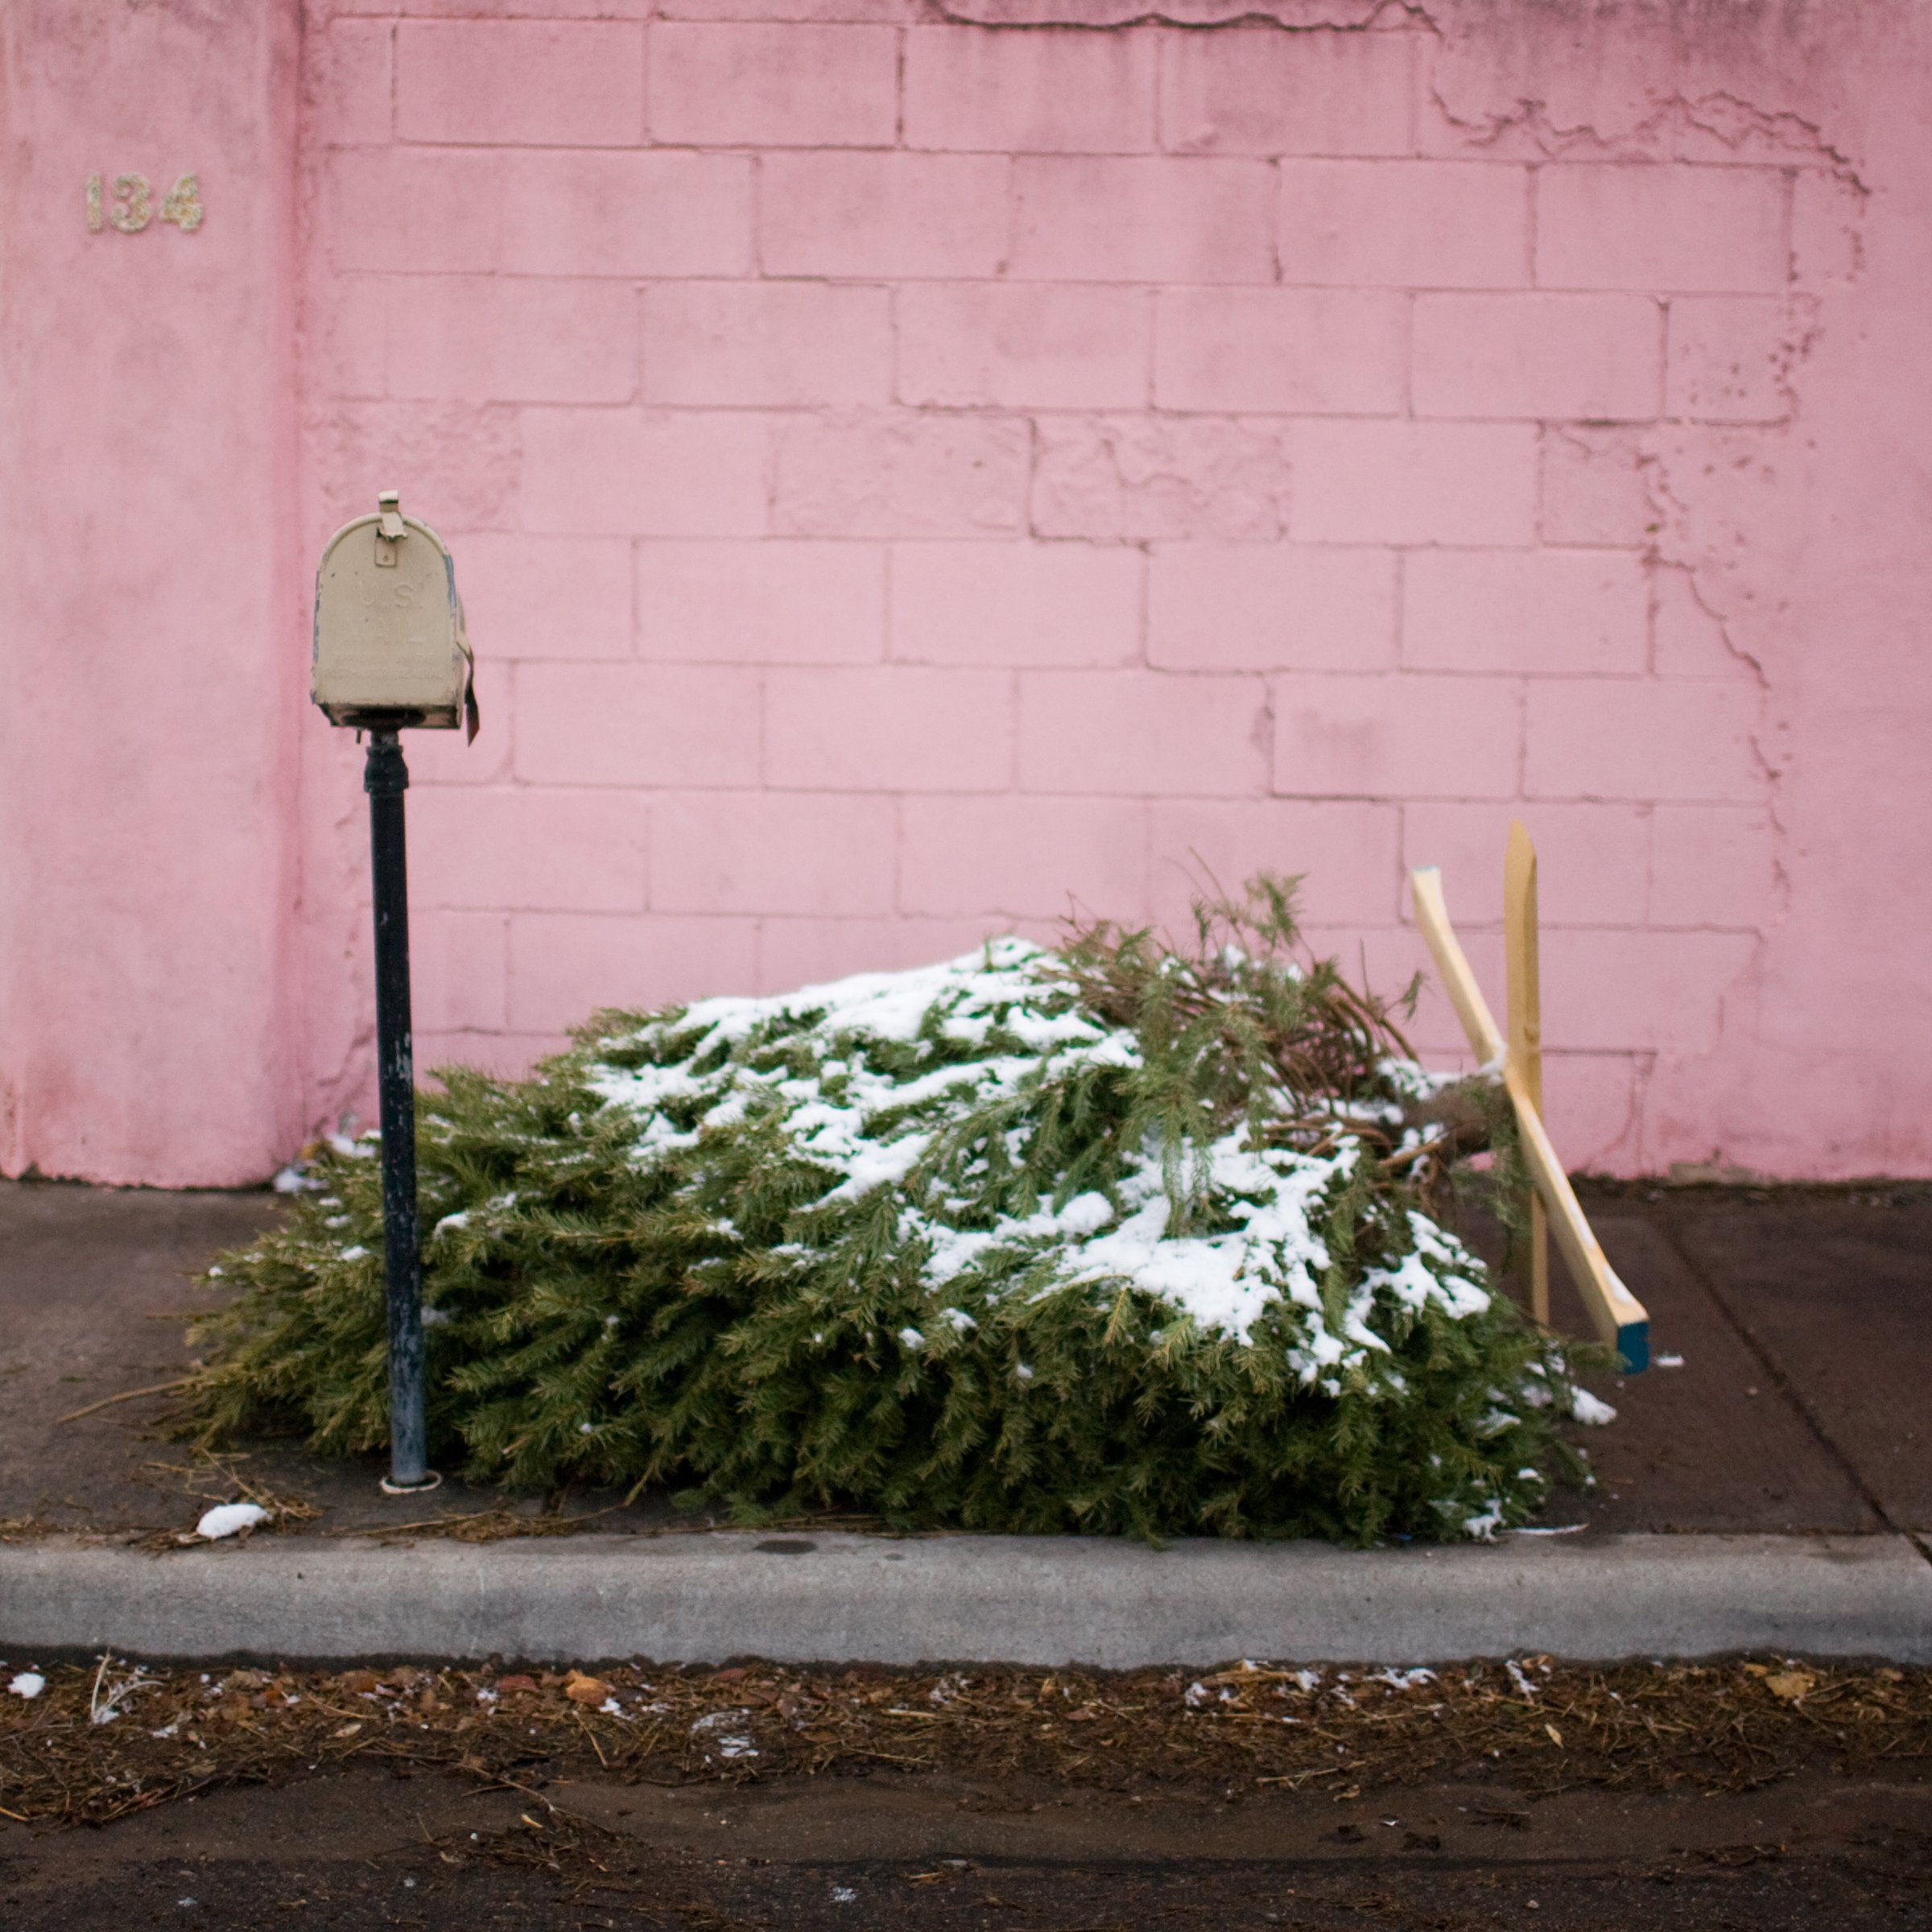 An old abandoned Christmas tree covered in snow on the side of the road next to a mailbox and a pink wall